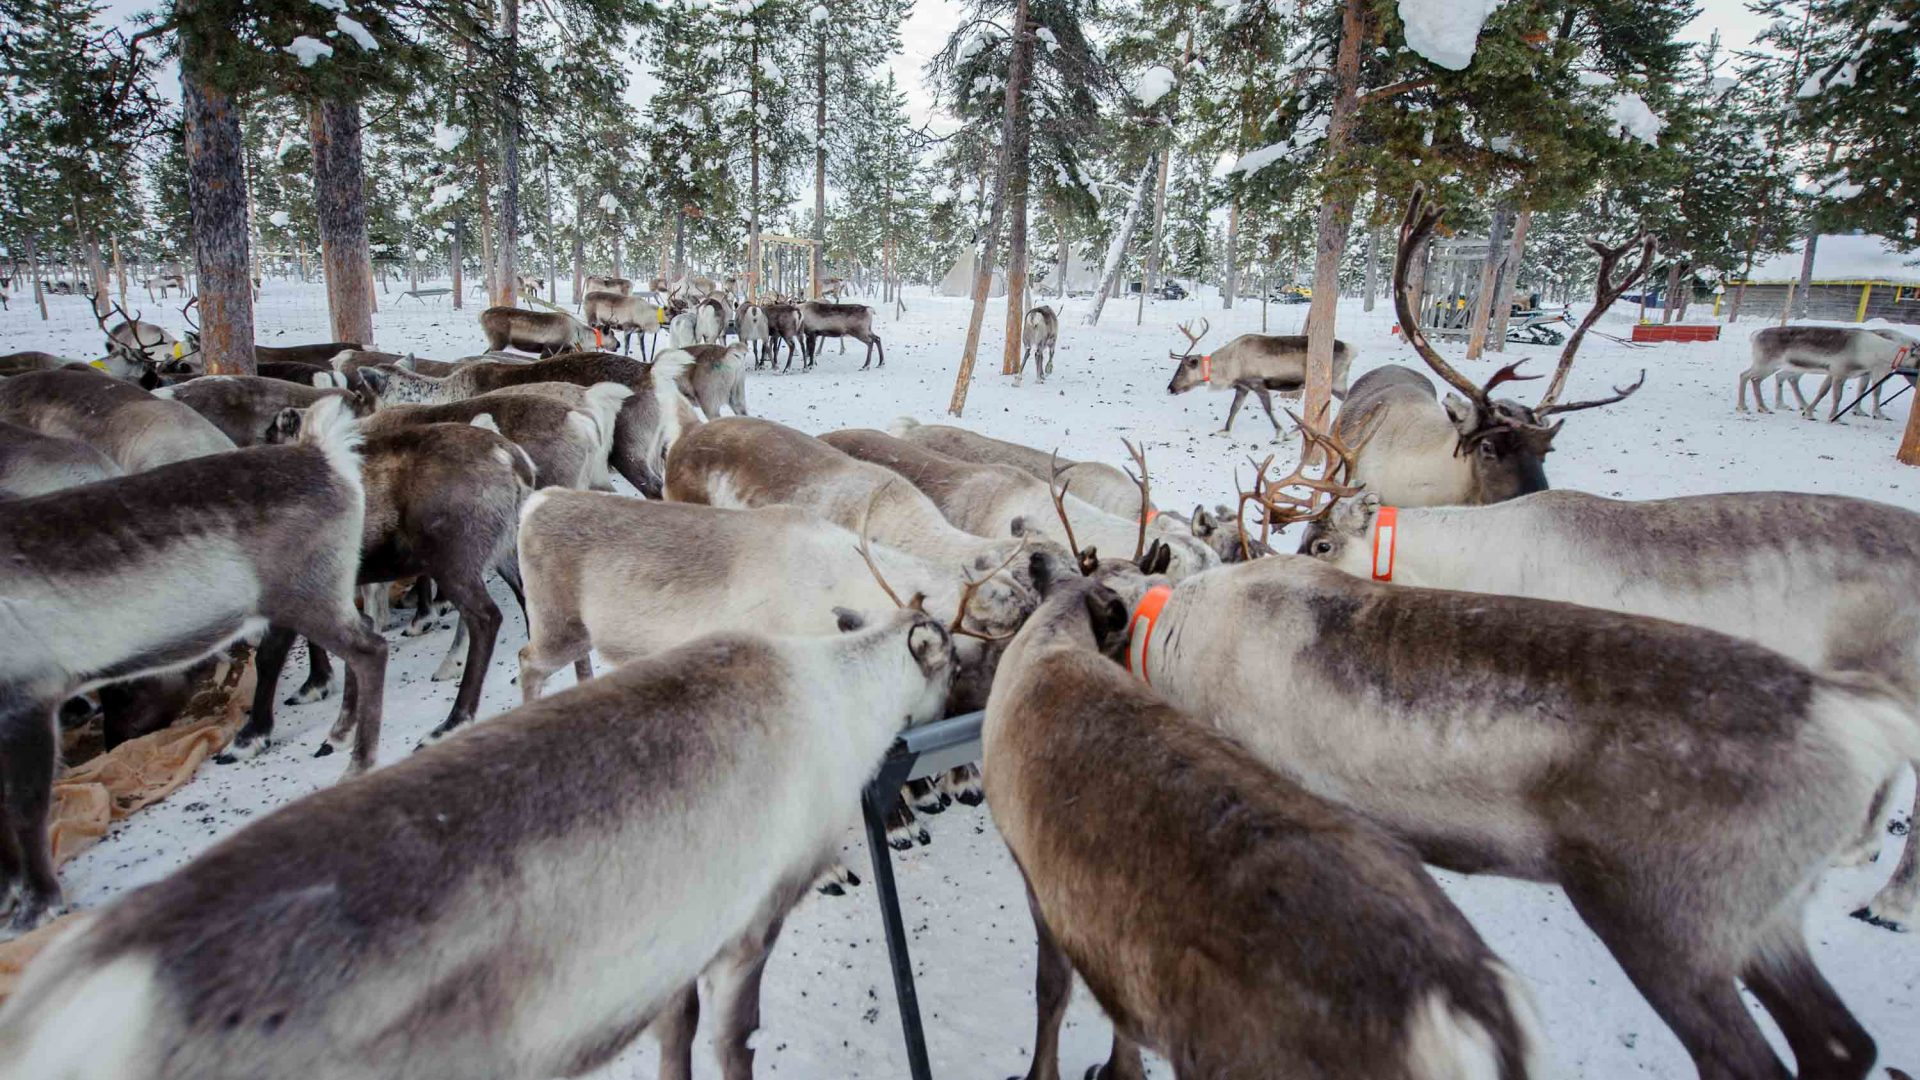 Reindeer at Nutti Sámi Siida, a company which organizes experiences that bring travelers closer to reindeer and the Sami culture.